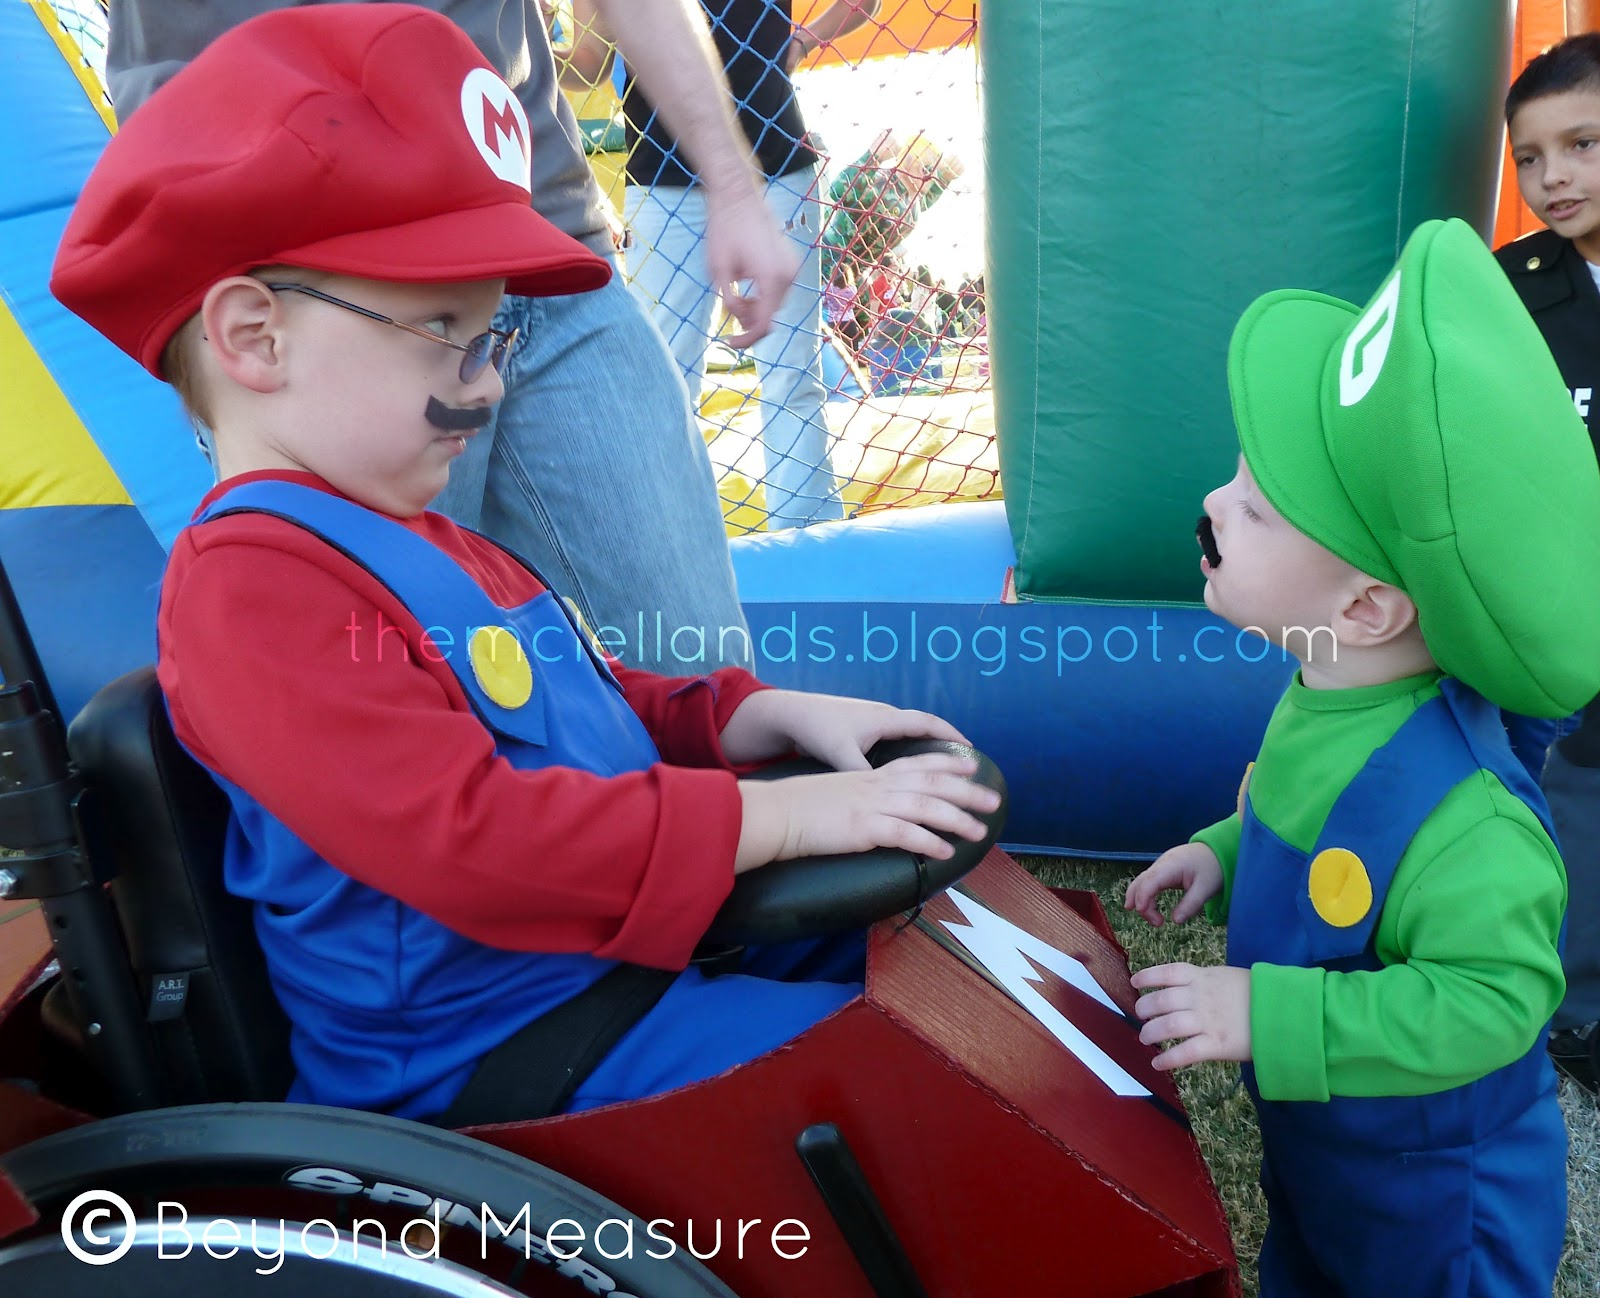 wheelchair mario best leather zero gravity chairs beyond measure and luigi take over halloween